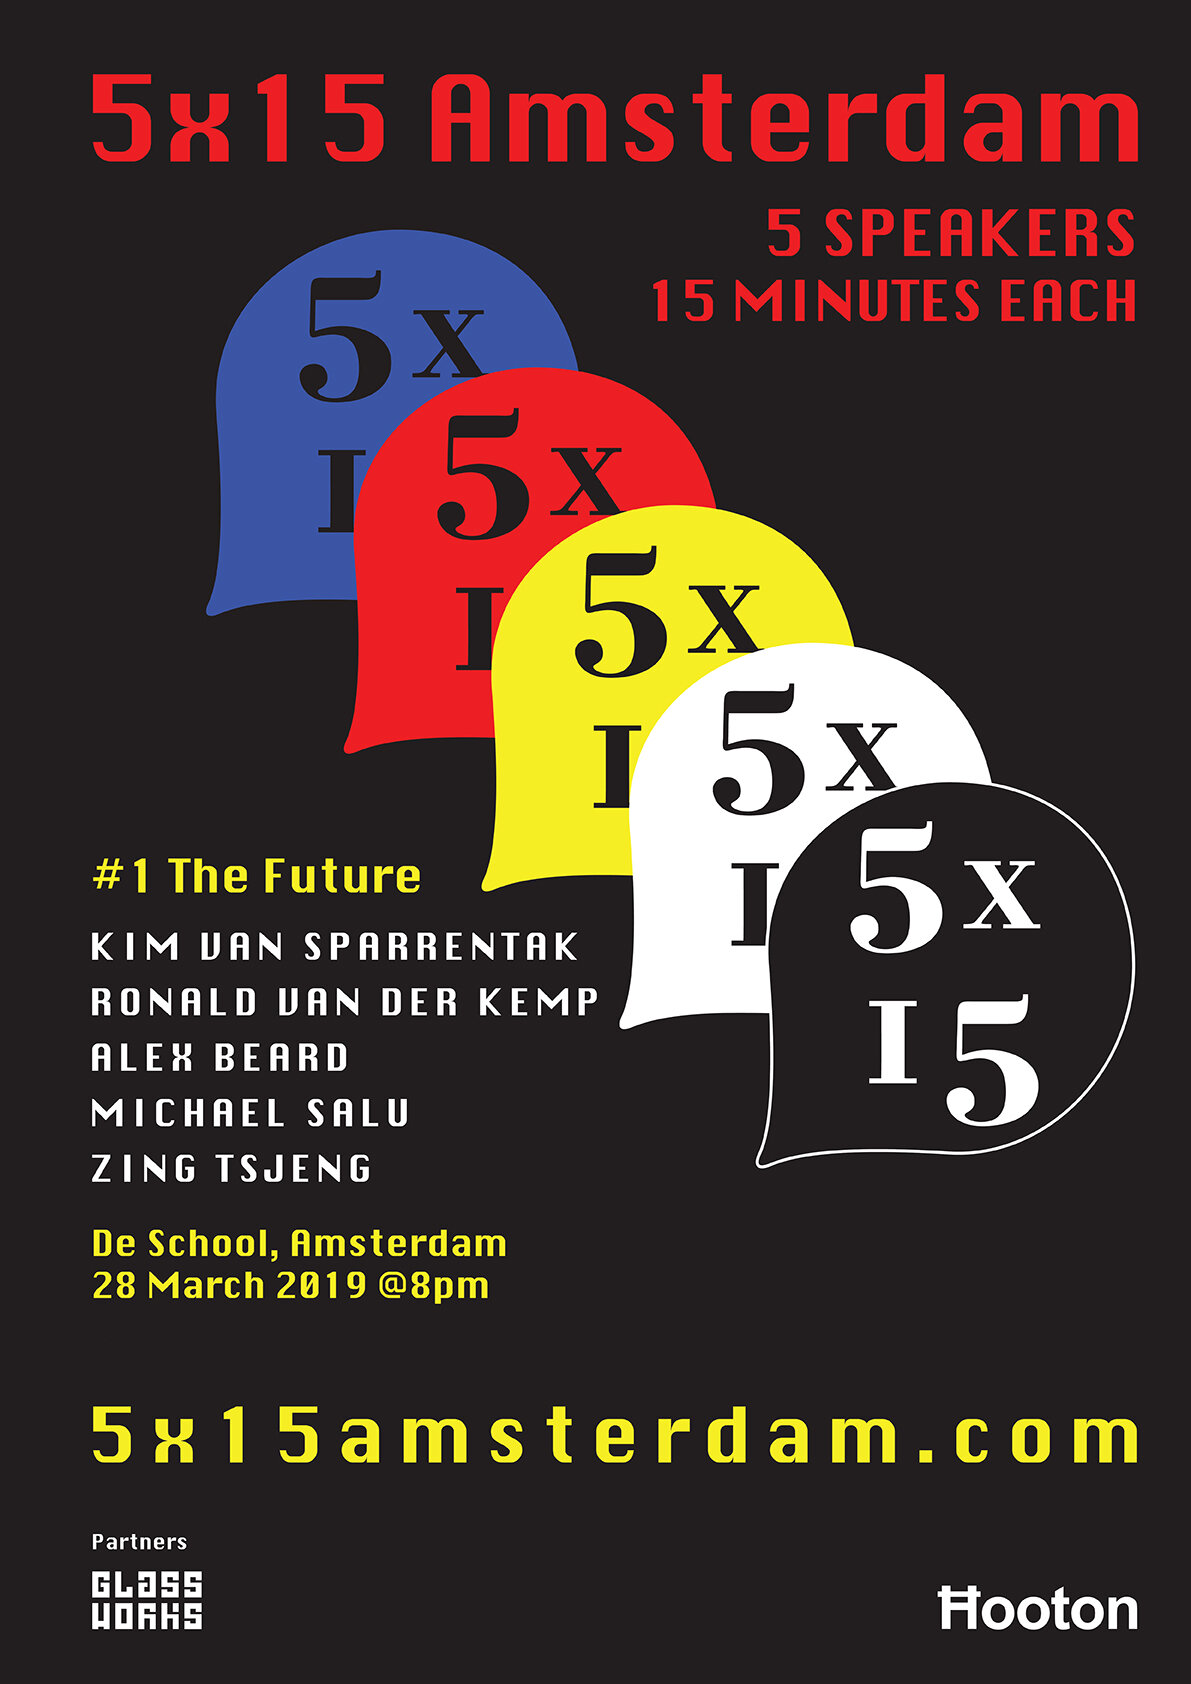 5x15 Amsterdam #1: The Future - 5x15 Amsterdam launched on the 28th March 2019 at De School with an evening of stimulating stories and ideas around our inaugural theme: The Future. Featuring talks from Ronald van der Kemp (The world's first sustainable couture designer), Zing Tsjeng (Broadly UK editor and author), Kim Van Sparrentak (Member of European Parliament and climate activist), Alex Beard (author 'Natural Born Learners') and Michael Salu (writer, artist and critic). The evening was introduced by journalist Mark Smith (Fantastic Man, The Guardian, The Times) and the American Book Centre sold books from our speakers during the event.Read more about the event here.